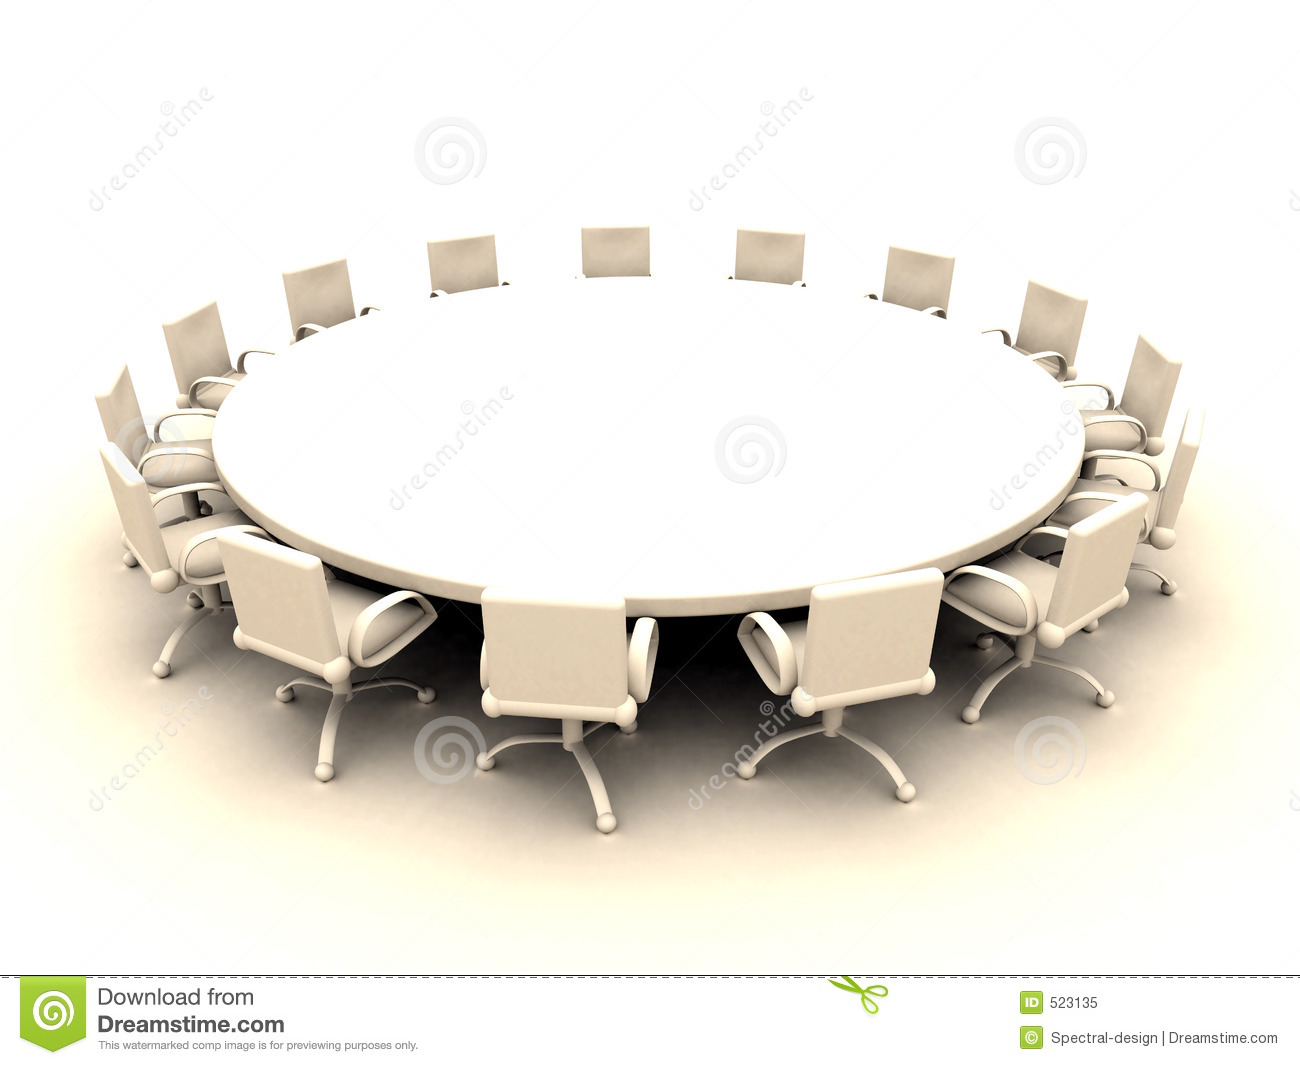 Round Table 2 Royalty Free Stock Photo Image 523135 : round table 2 523135 from www.dreamstime.com size 1300 x 1065 jpeg 150kB